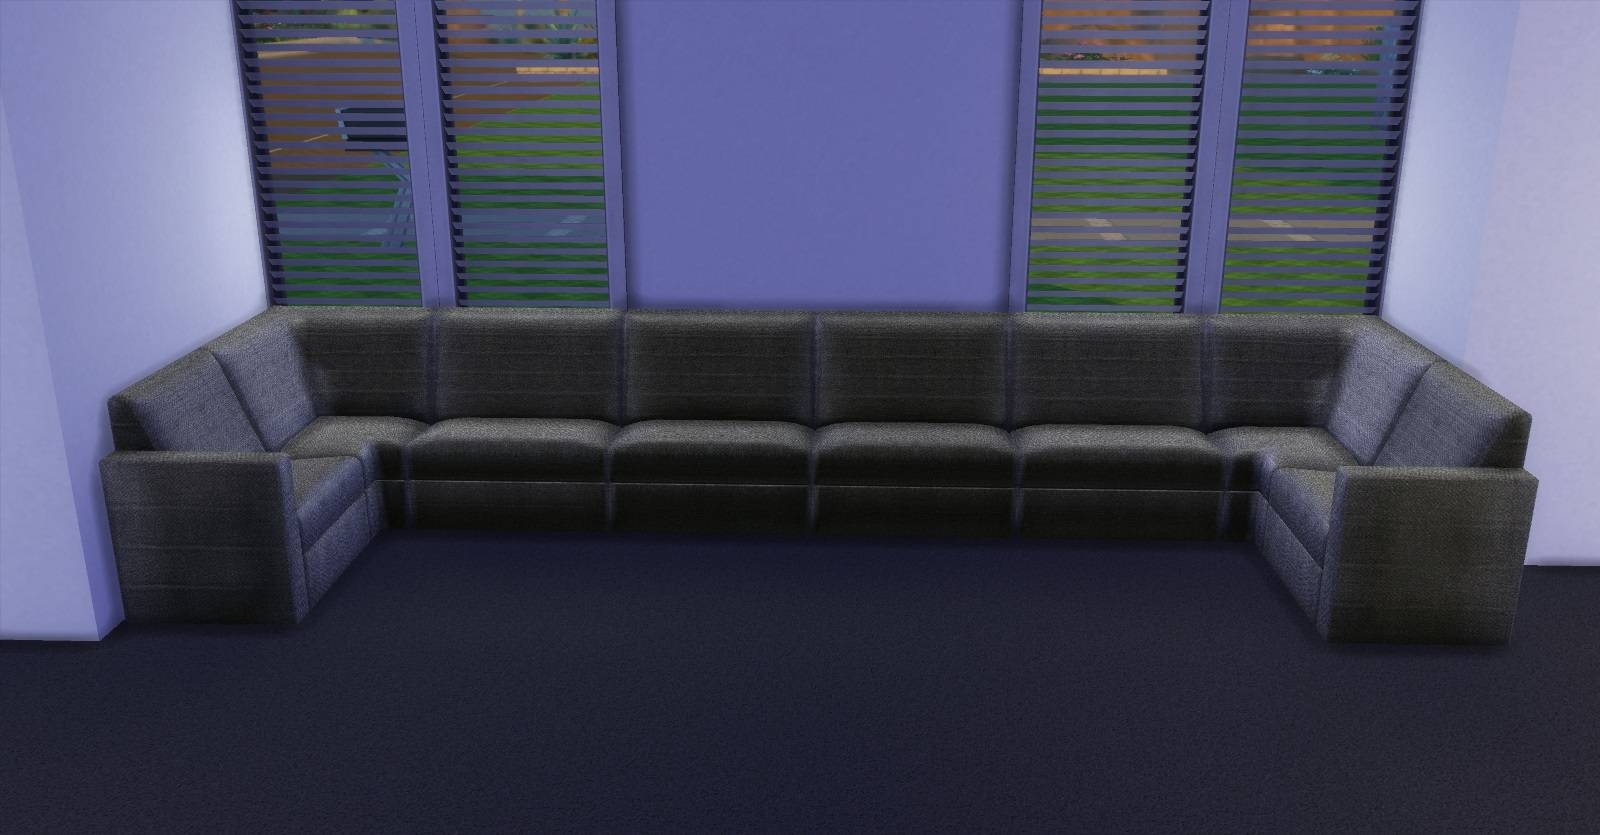 Extraordinary Sims 3 Sectional Sofa 18 For C Shaped Sofa Sectional Within C Shaped Sofa (View 12 of 30)